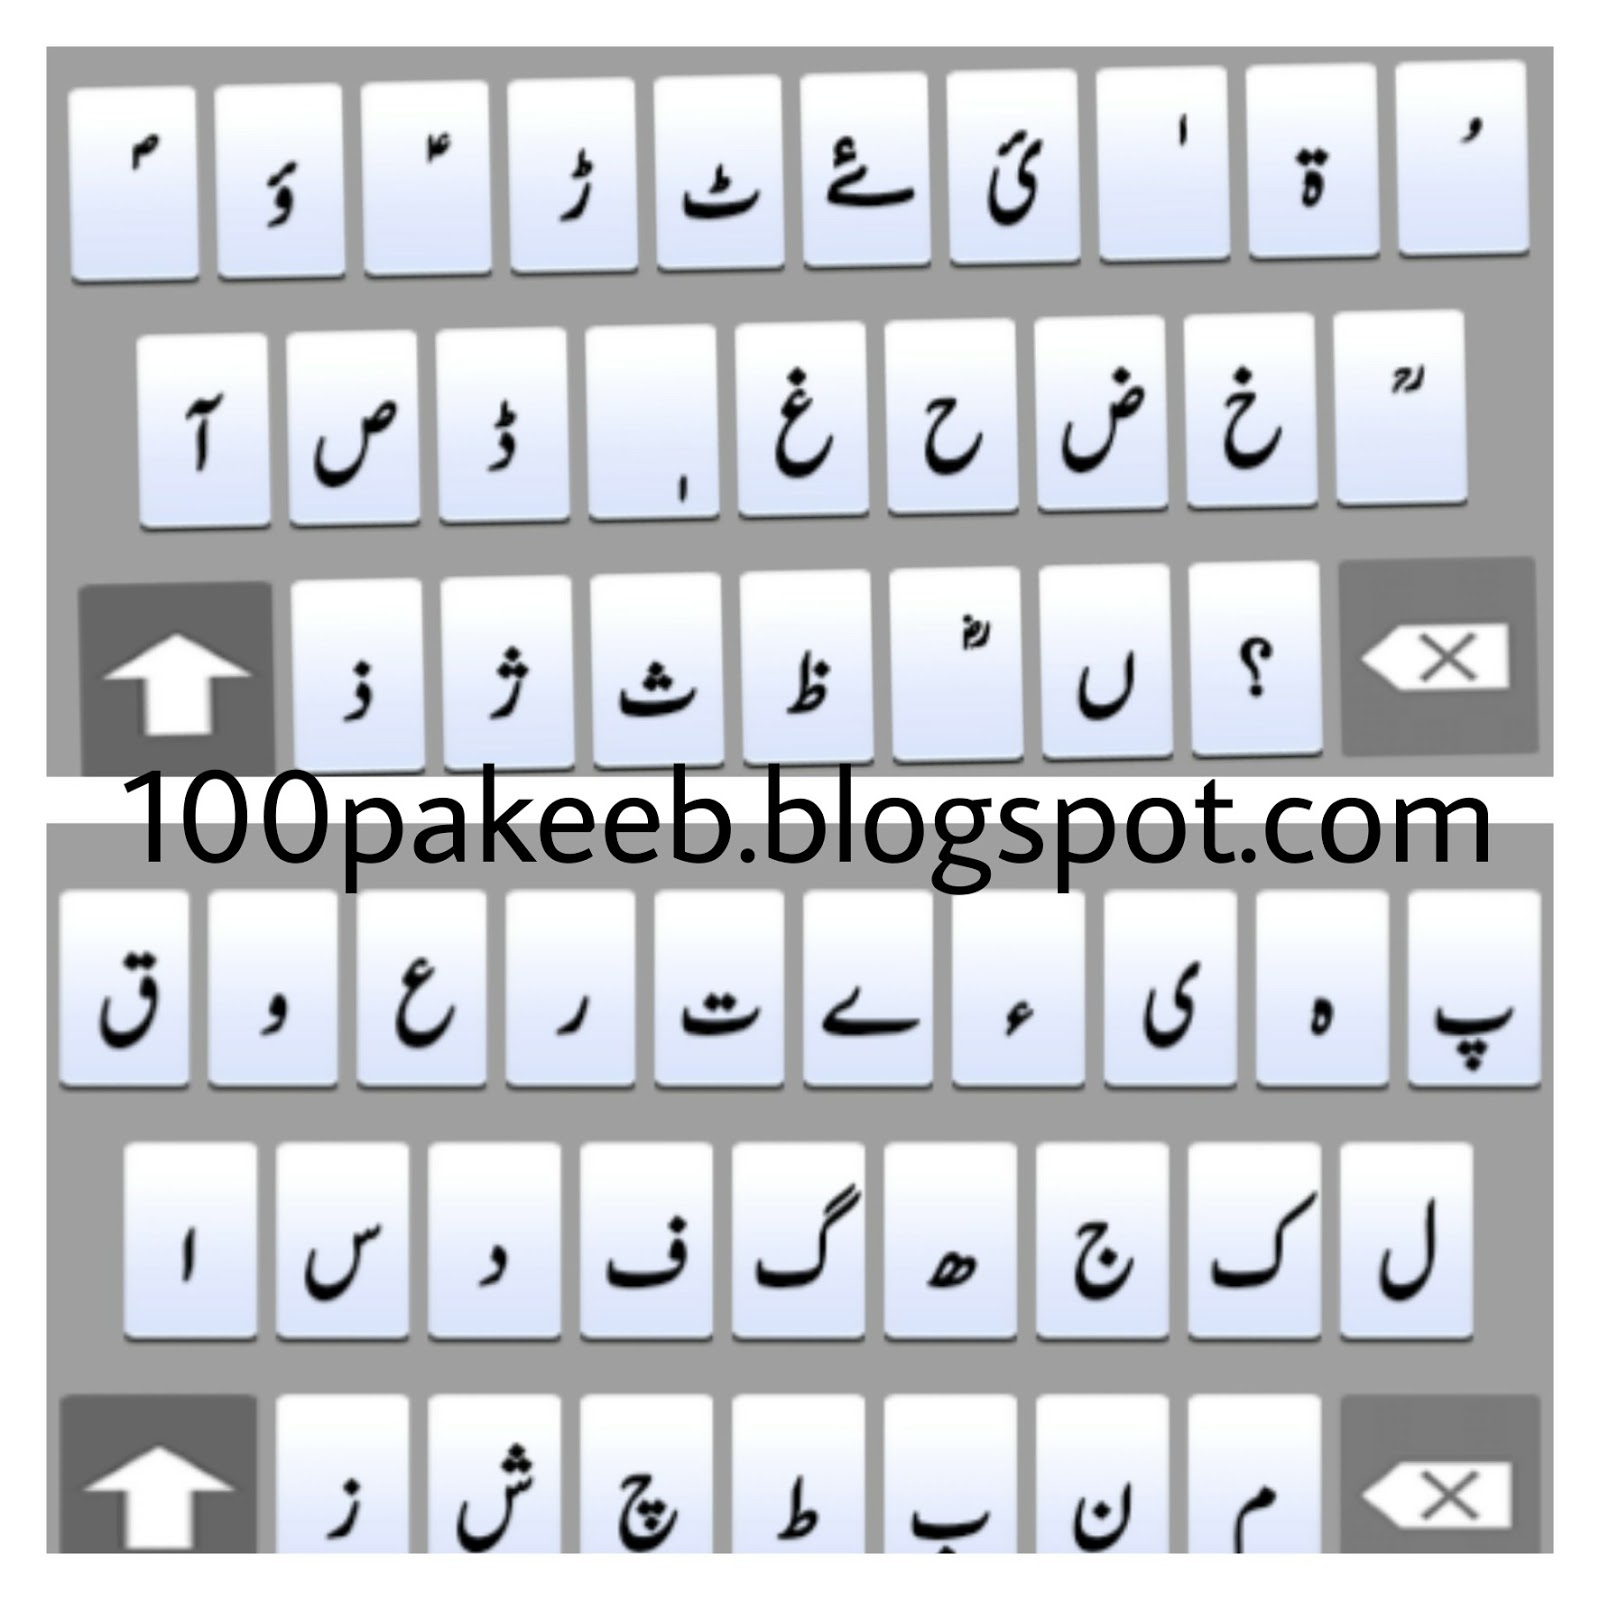 how to write urdu and arabic on photos in beautiful writing photex 100pakweb. Black Bedroom Furniture Sets. Home Design Ideas